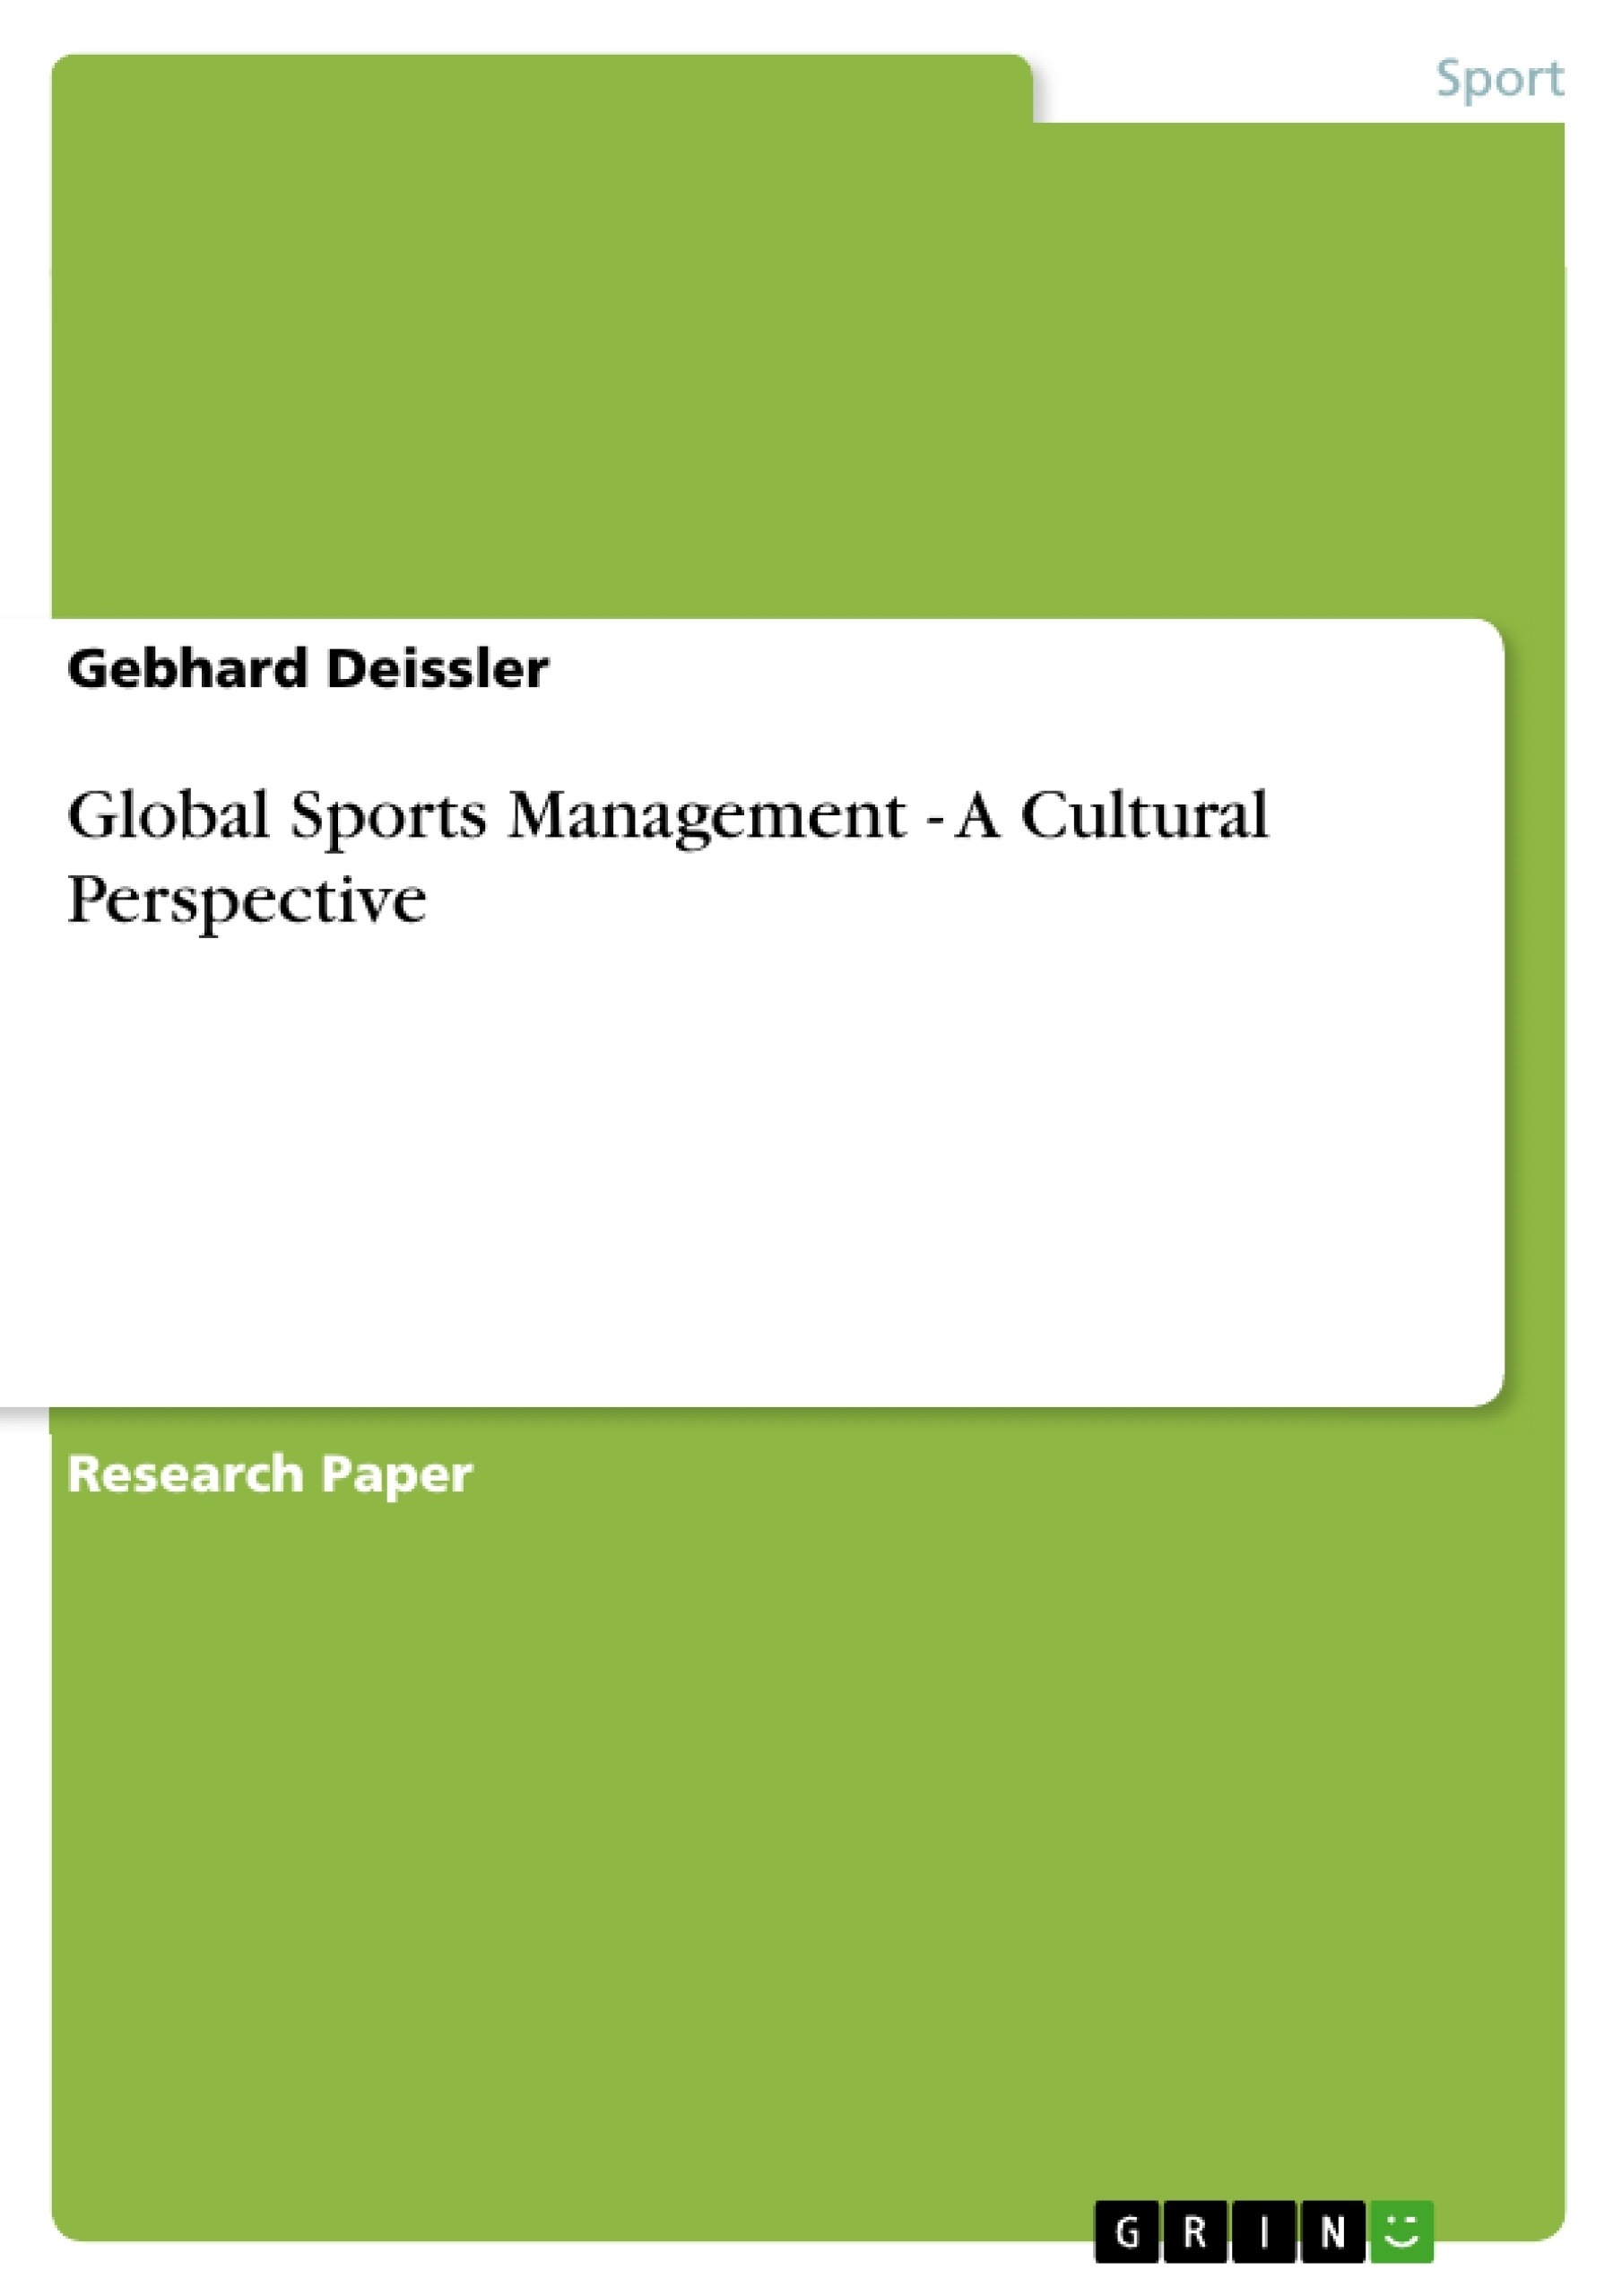 Title: Global Sports Management - A Cultural Perspective